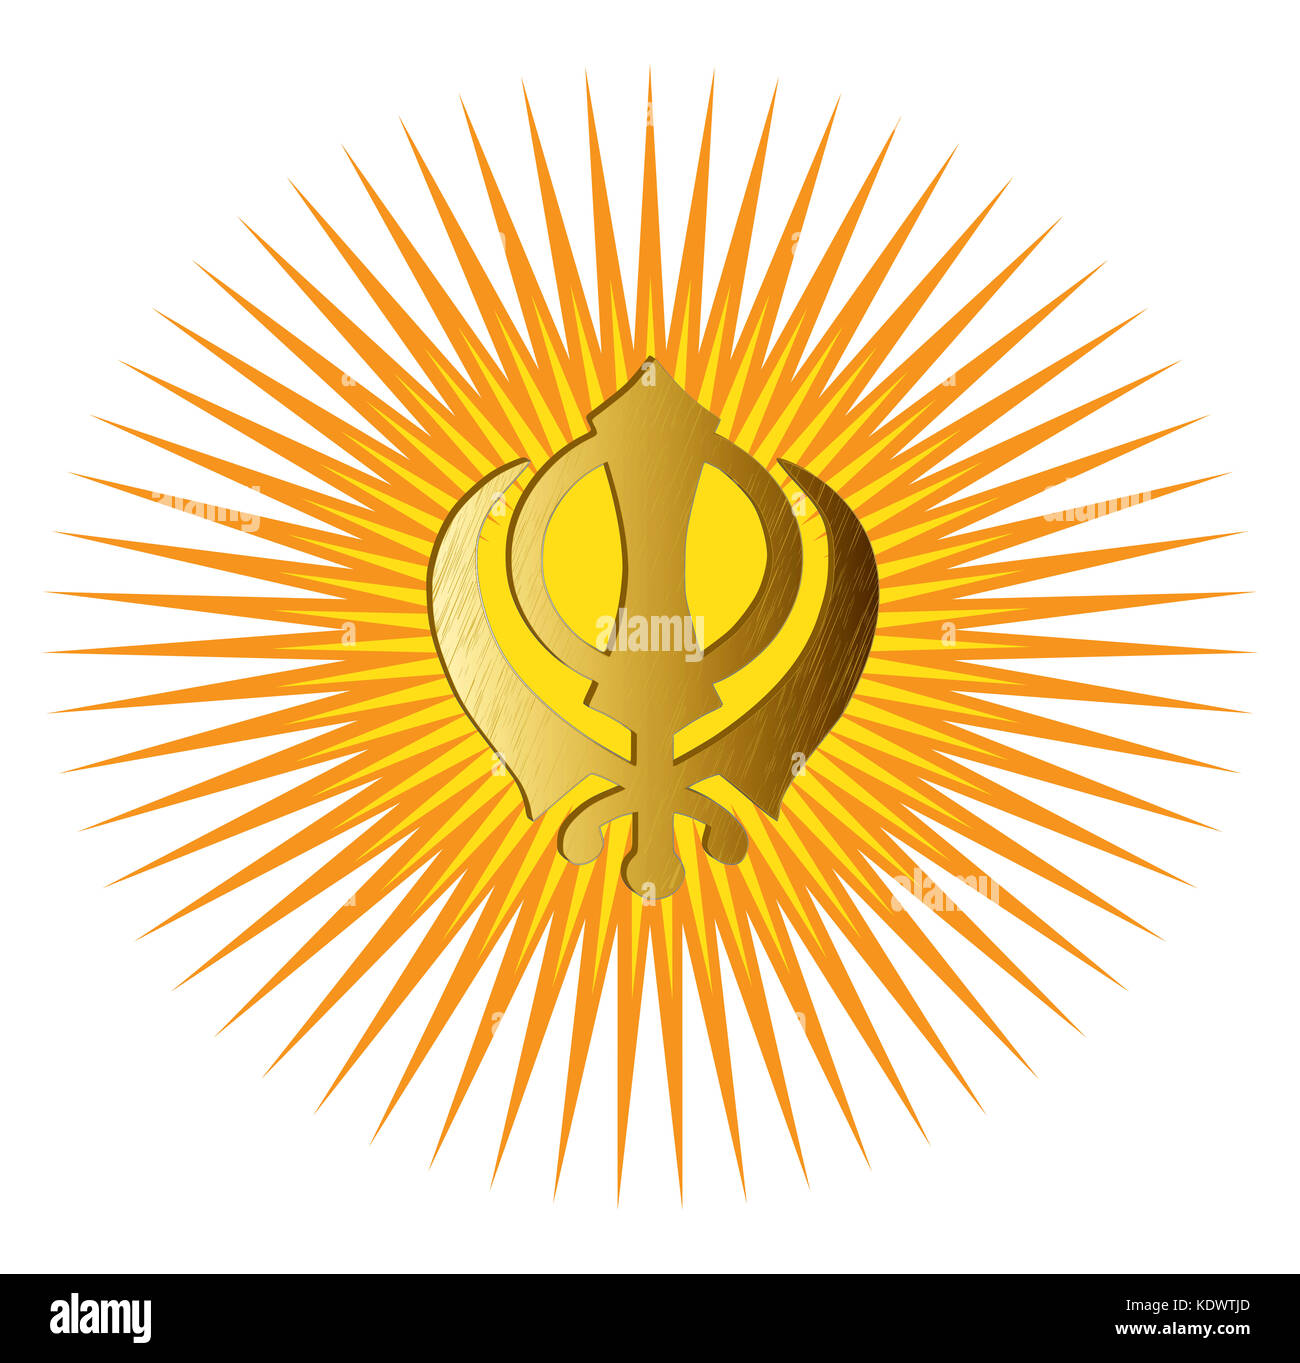 The main symbol of Sikhism - sign Khanda made of gold metal. Red and gold gradient rays, isolated, illustration - Stock Image